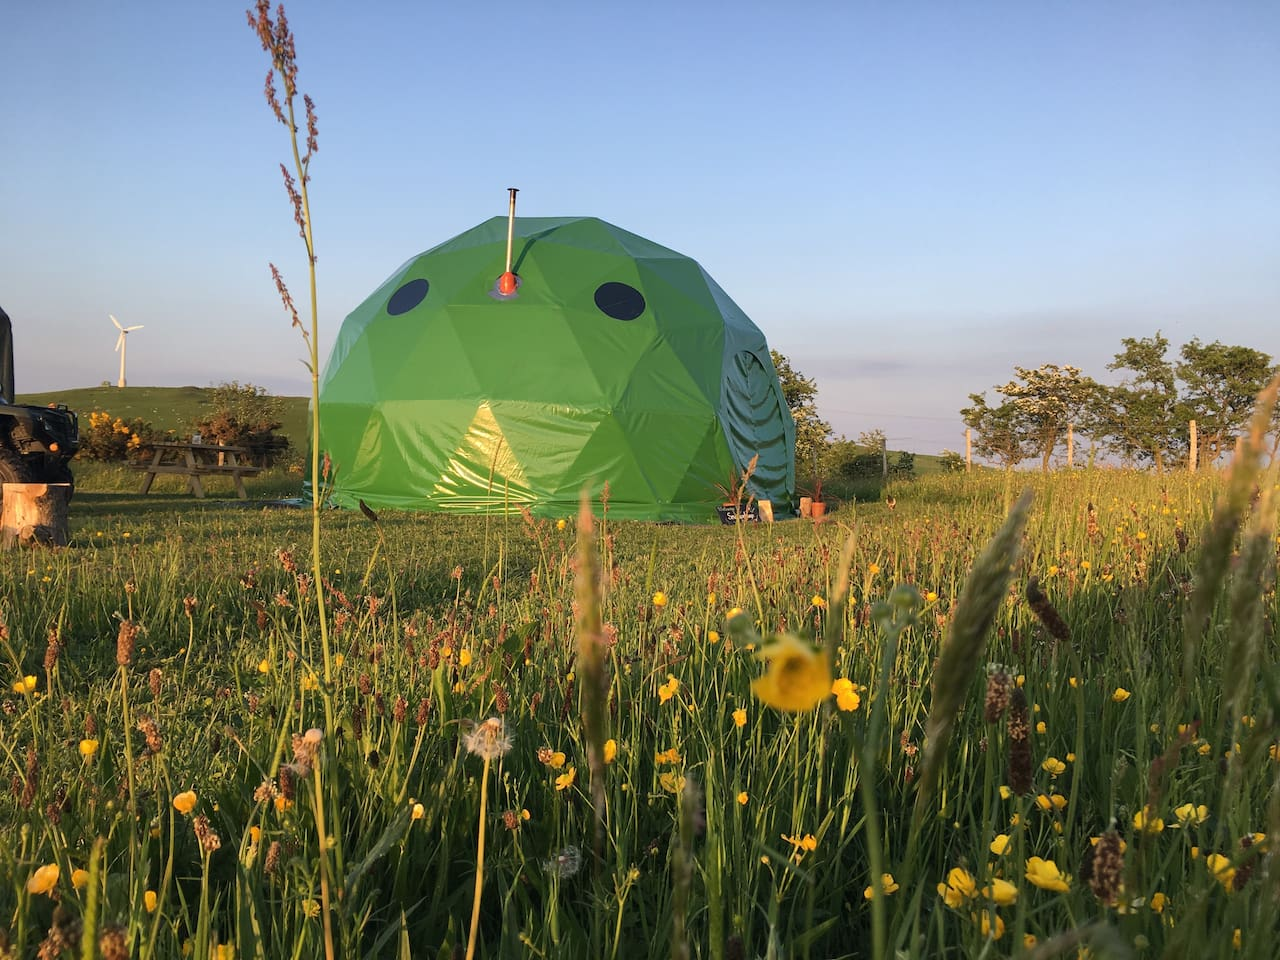 The dome is situated in a beautiful meadow